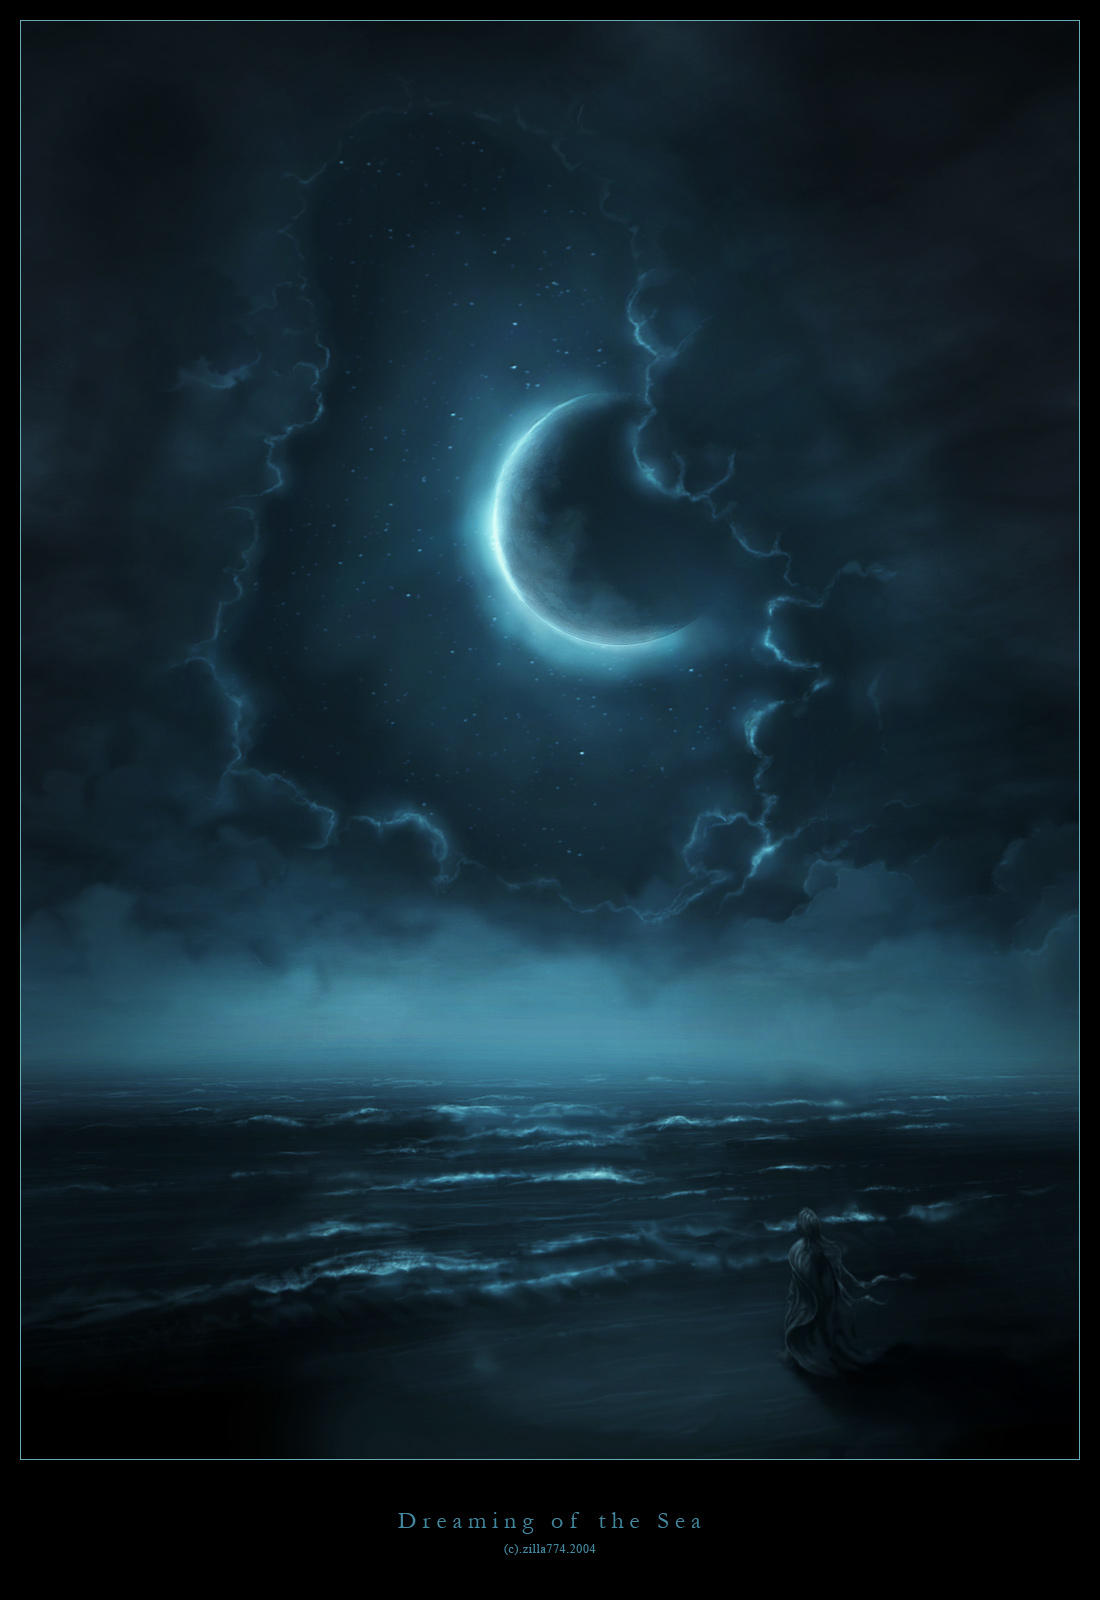 Lune Surplombant La Mer dans Darkness Dreaming_of_the_Sea